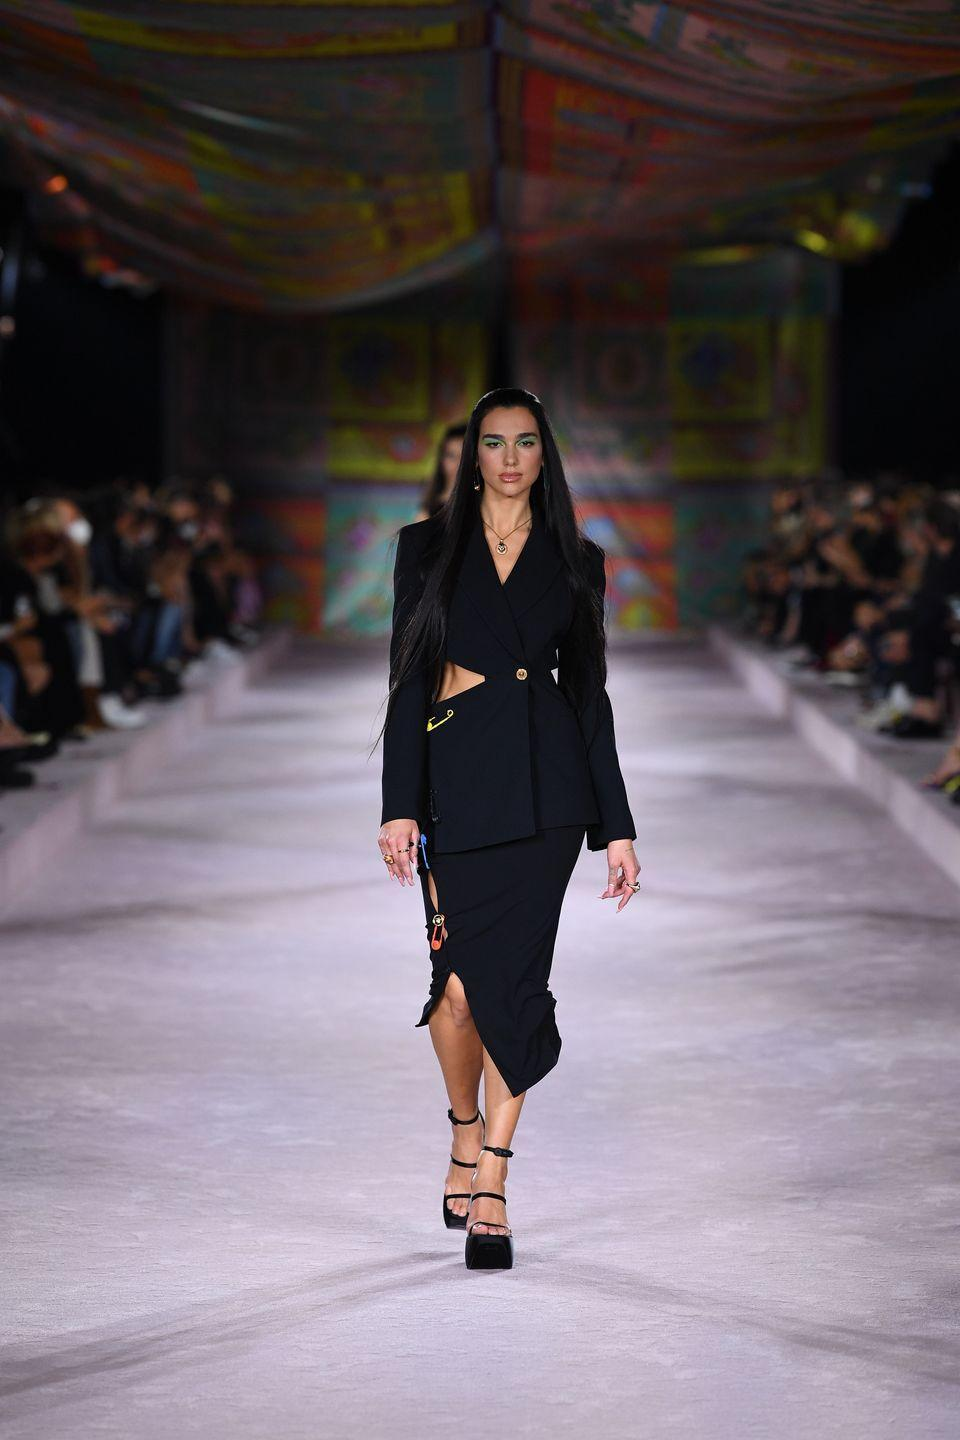 """<p>Making her catwalk debut, British-Albanian star Dua Lipa stormed Versace's SS22 runway at Milan Fashion Week.</p><p>Lipa took to <a href=""""https://www.instagram.com/p/CUOII1vMzHy/"""" rel=""""nofollow noopener"""" target=""""_blank"""" data-ylk=""""slk:Instagram"""" class=""""link rapid-noclick-resp"""">Instagram</a> to share her delight, writing: 'such an honour to open and close the [Versace] show tonight in Milan.'</p><p>'[Donatella Versace] you know i'll be your Versace girl forever [sic]', the 26 year-old wrote. </p>"""